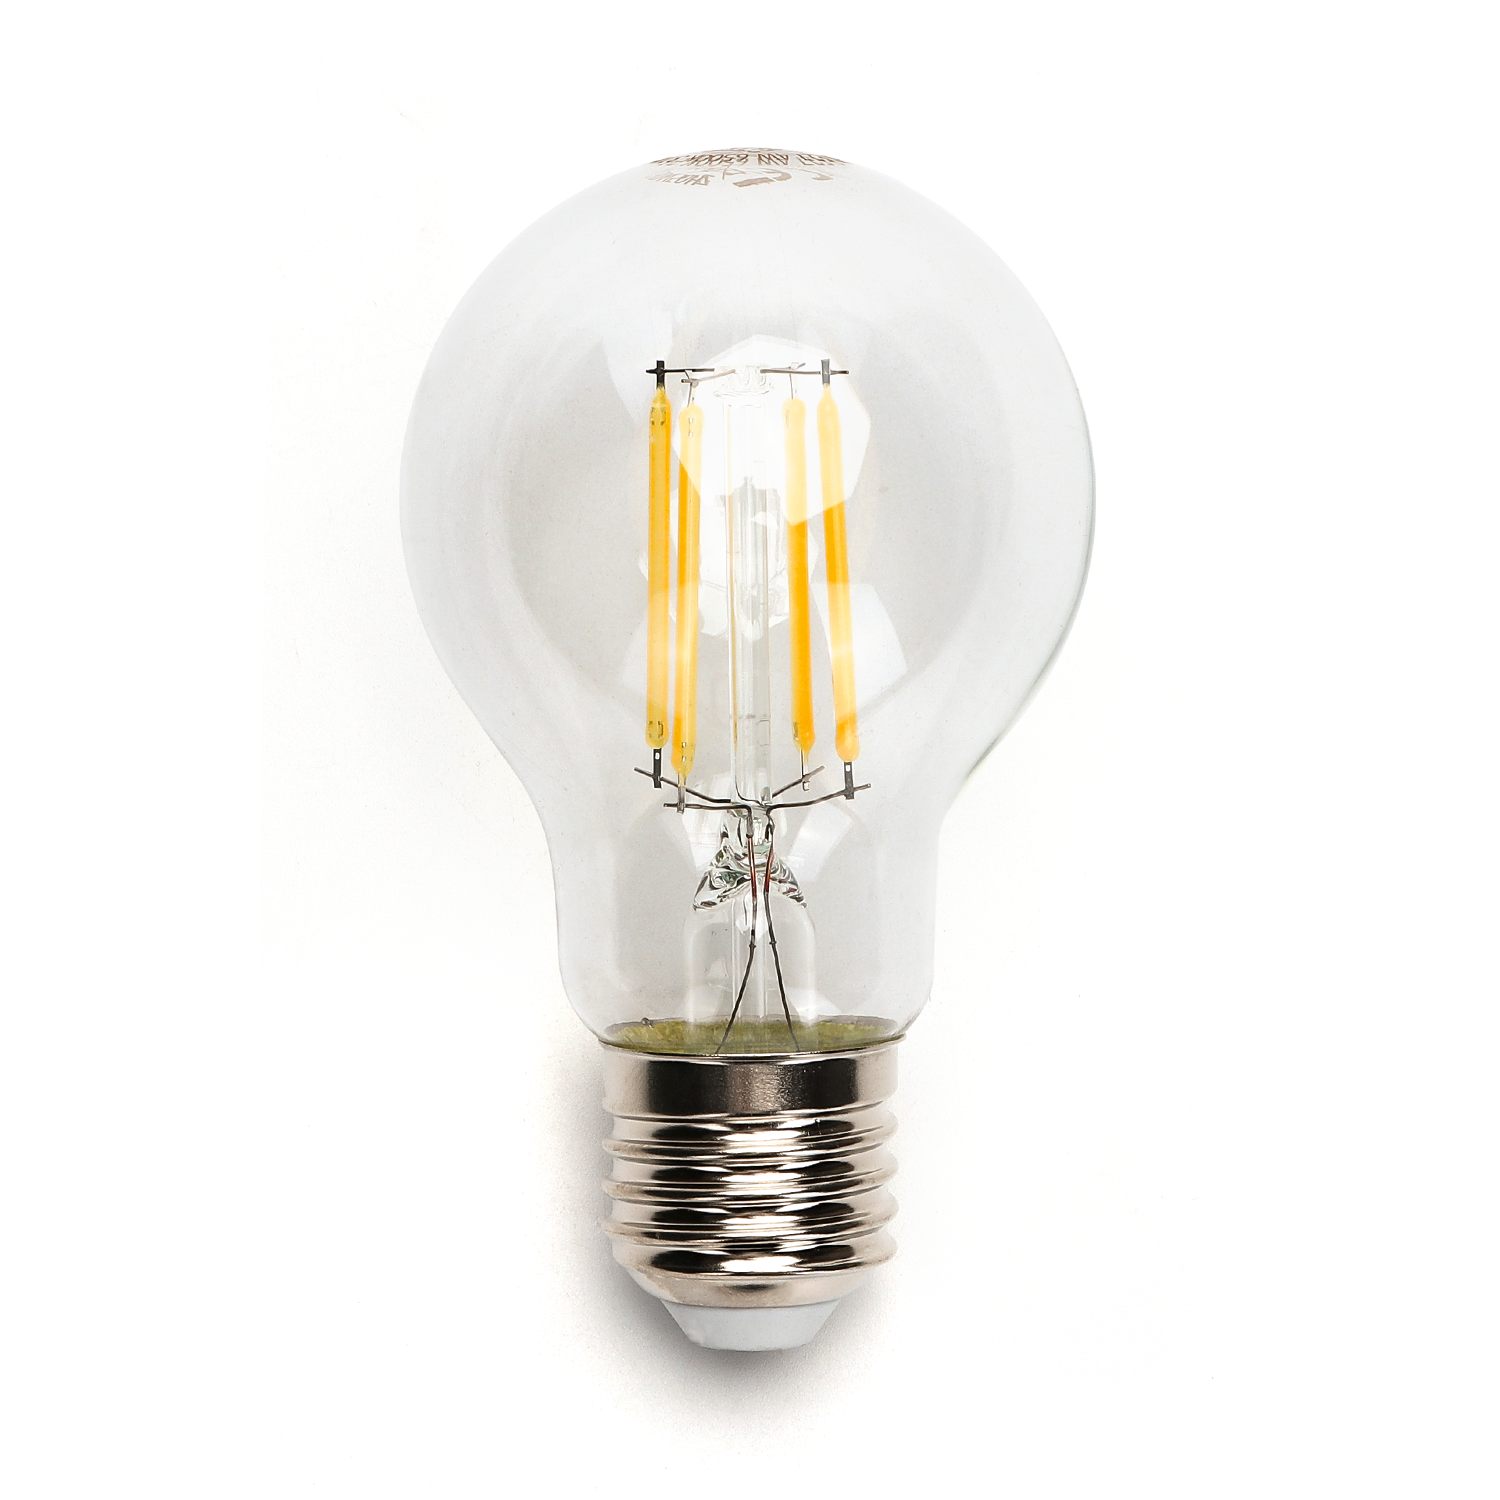 LED Filament Peer lamp 6 Watt grote fitting E27 A60 2700K Warm wit - lamp